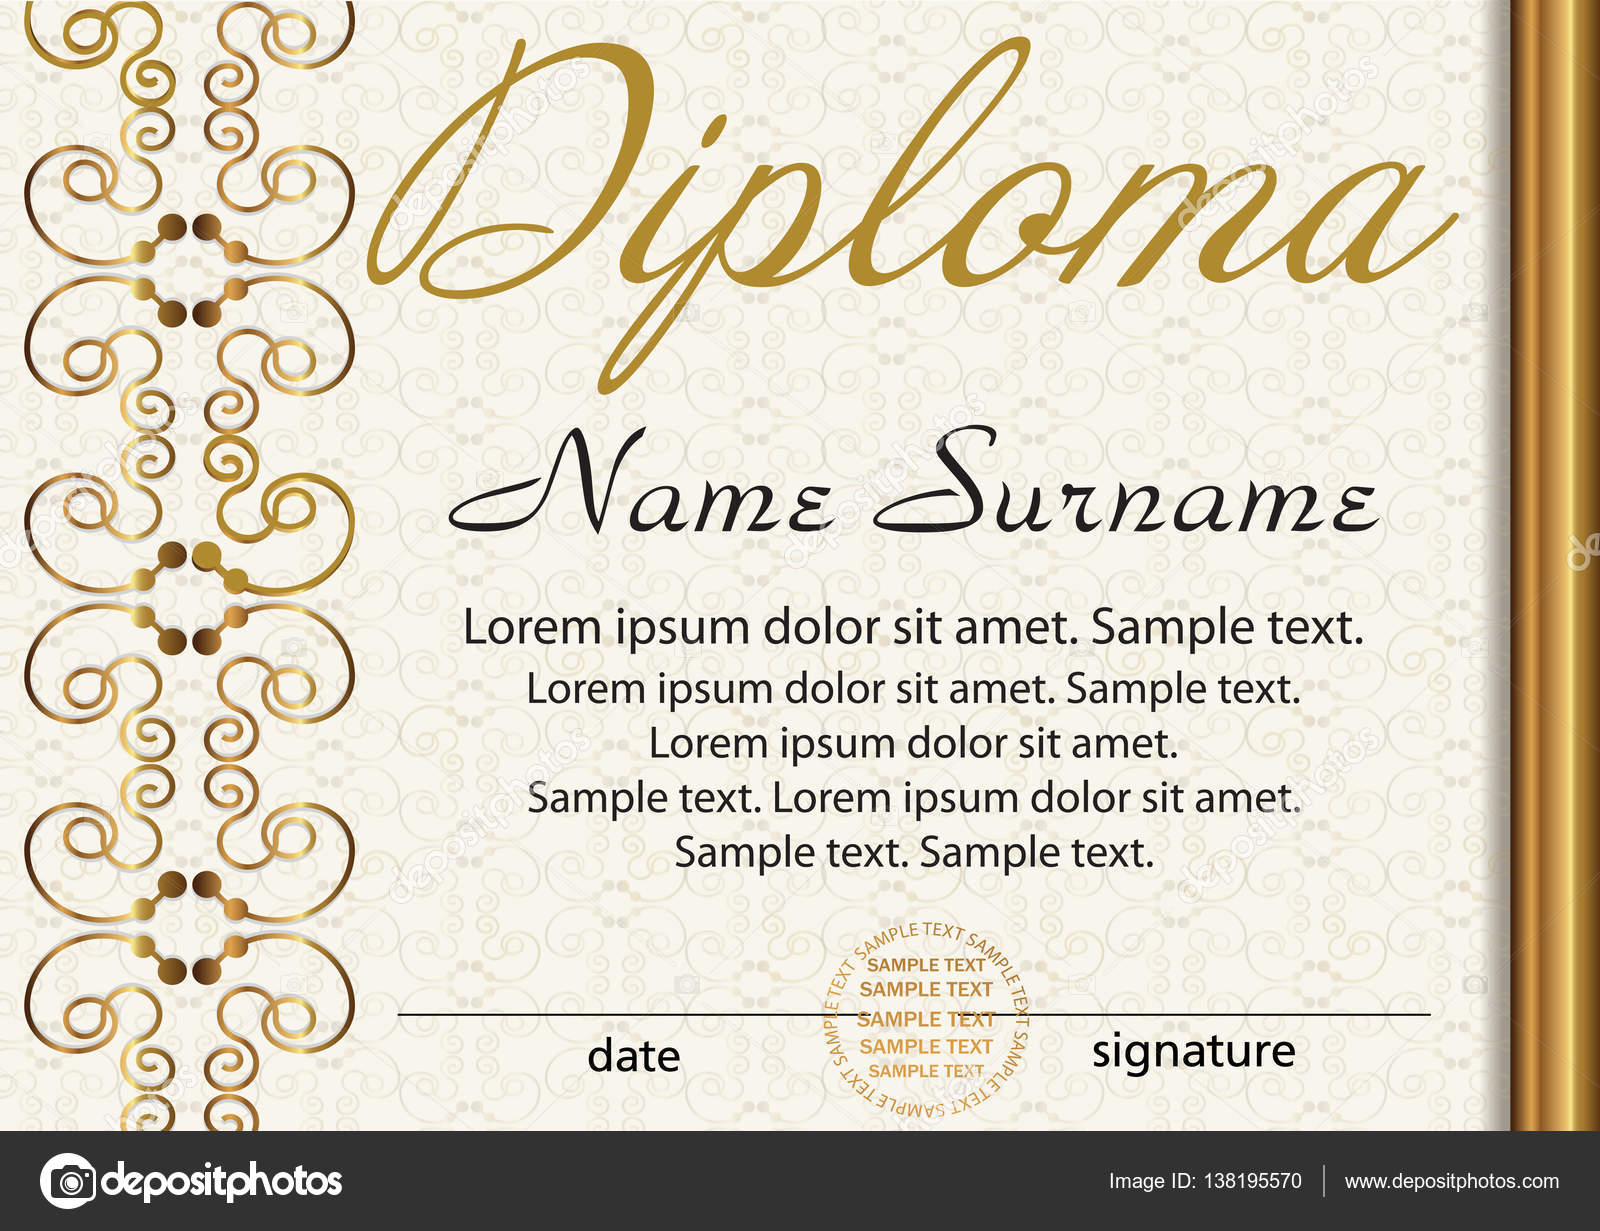 Certificate or diploma template award winner reward winning the diploma or certificate template award winner reward winning the competition elegant gold frame with an ornament vector illustration yadclub Choice Image